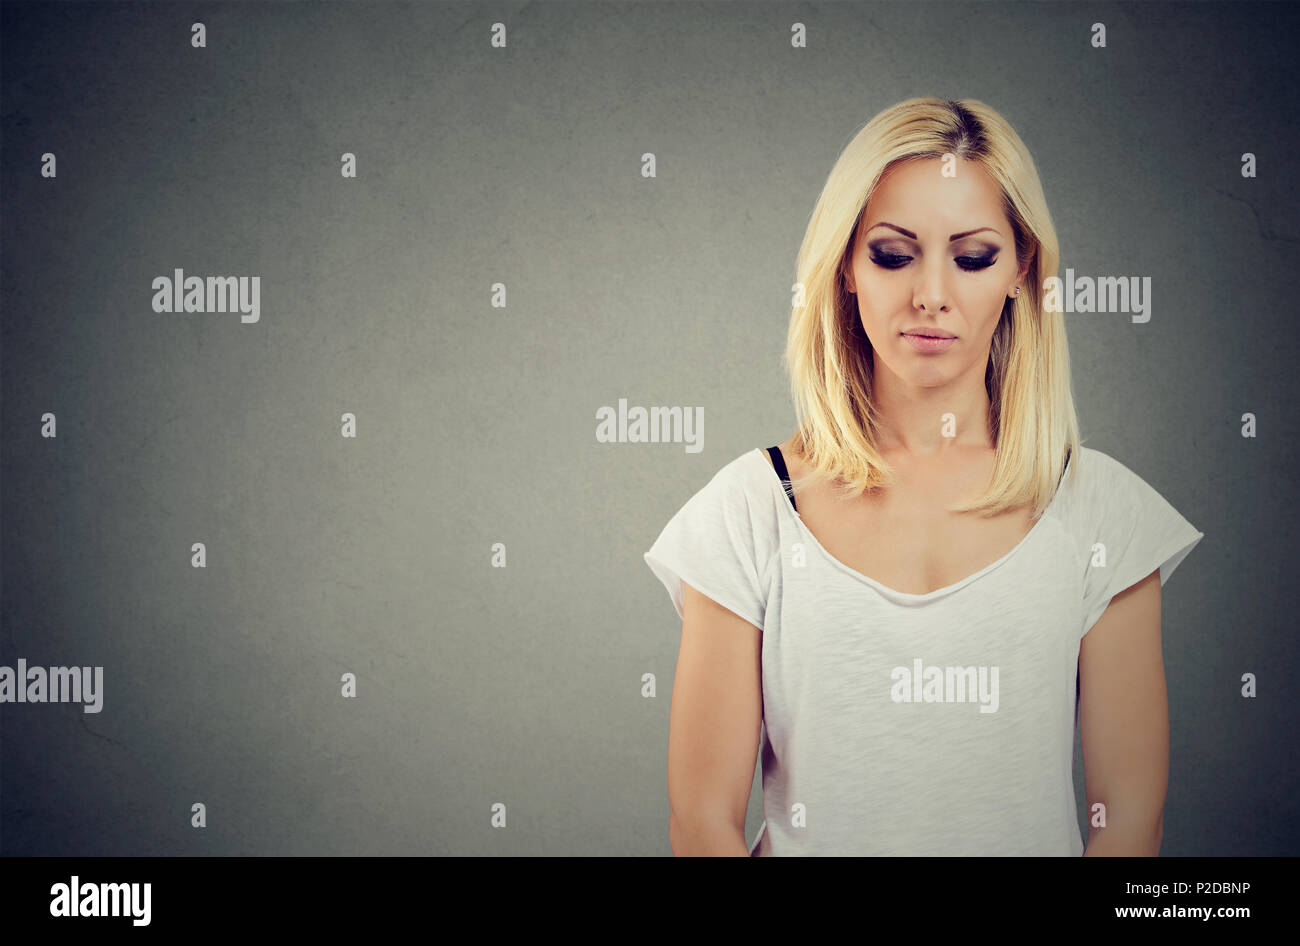 Sad blonde woman looking down feeling hopeless - Stock Image